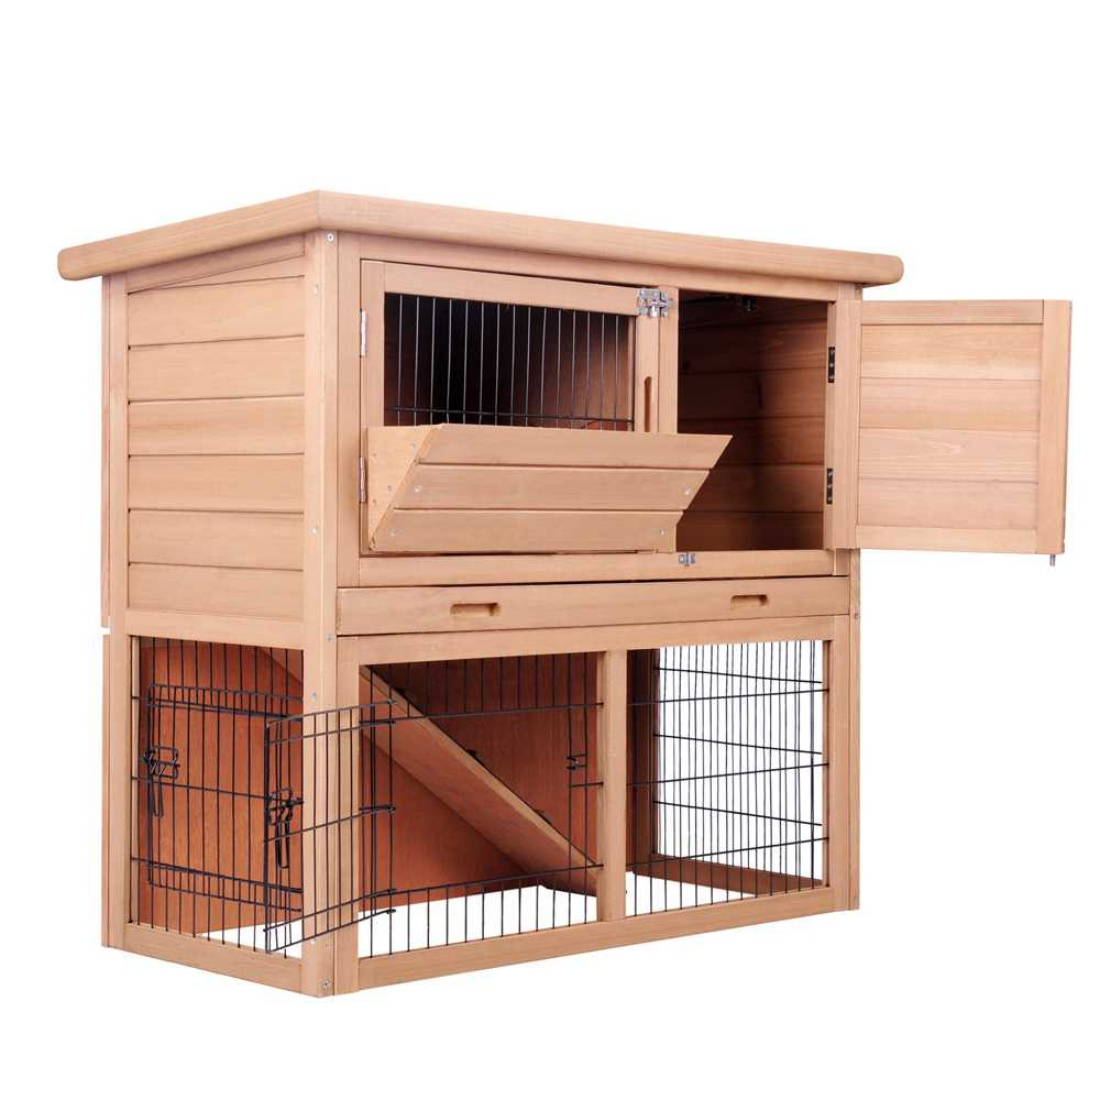 Medium 2 Storey Rabbit Hutch Wooden Cage Poultry Pet Guinea Pigs Rabbits Ferrets